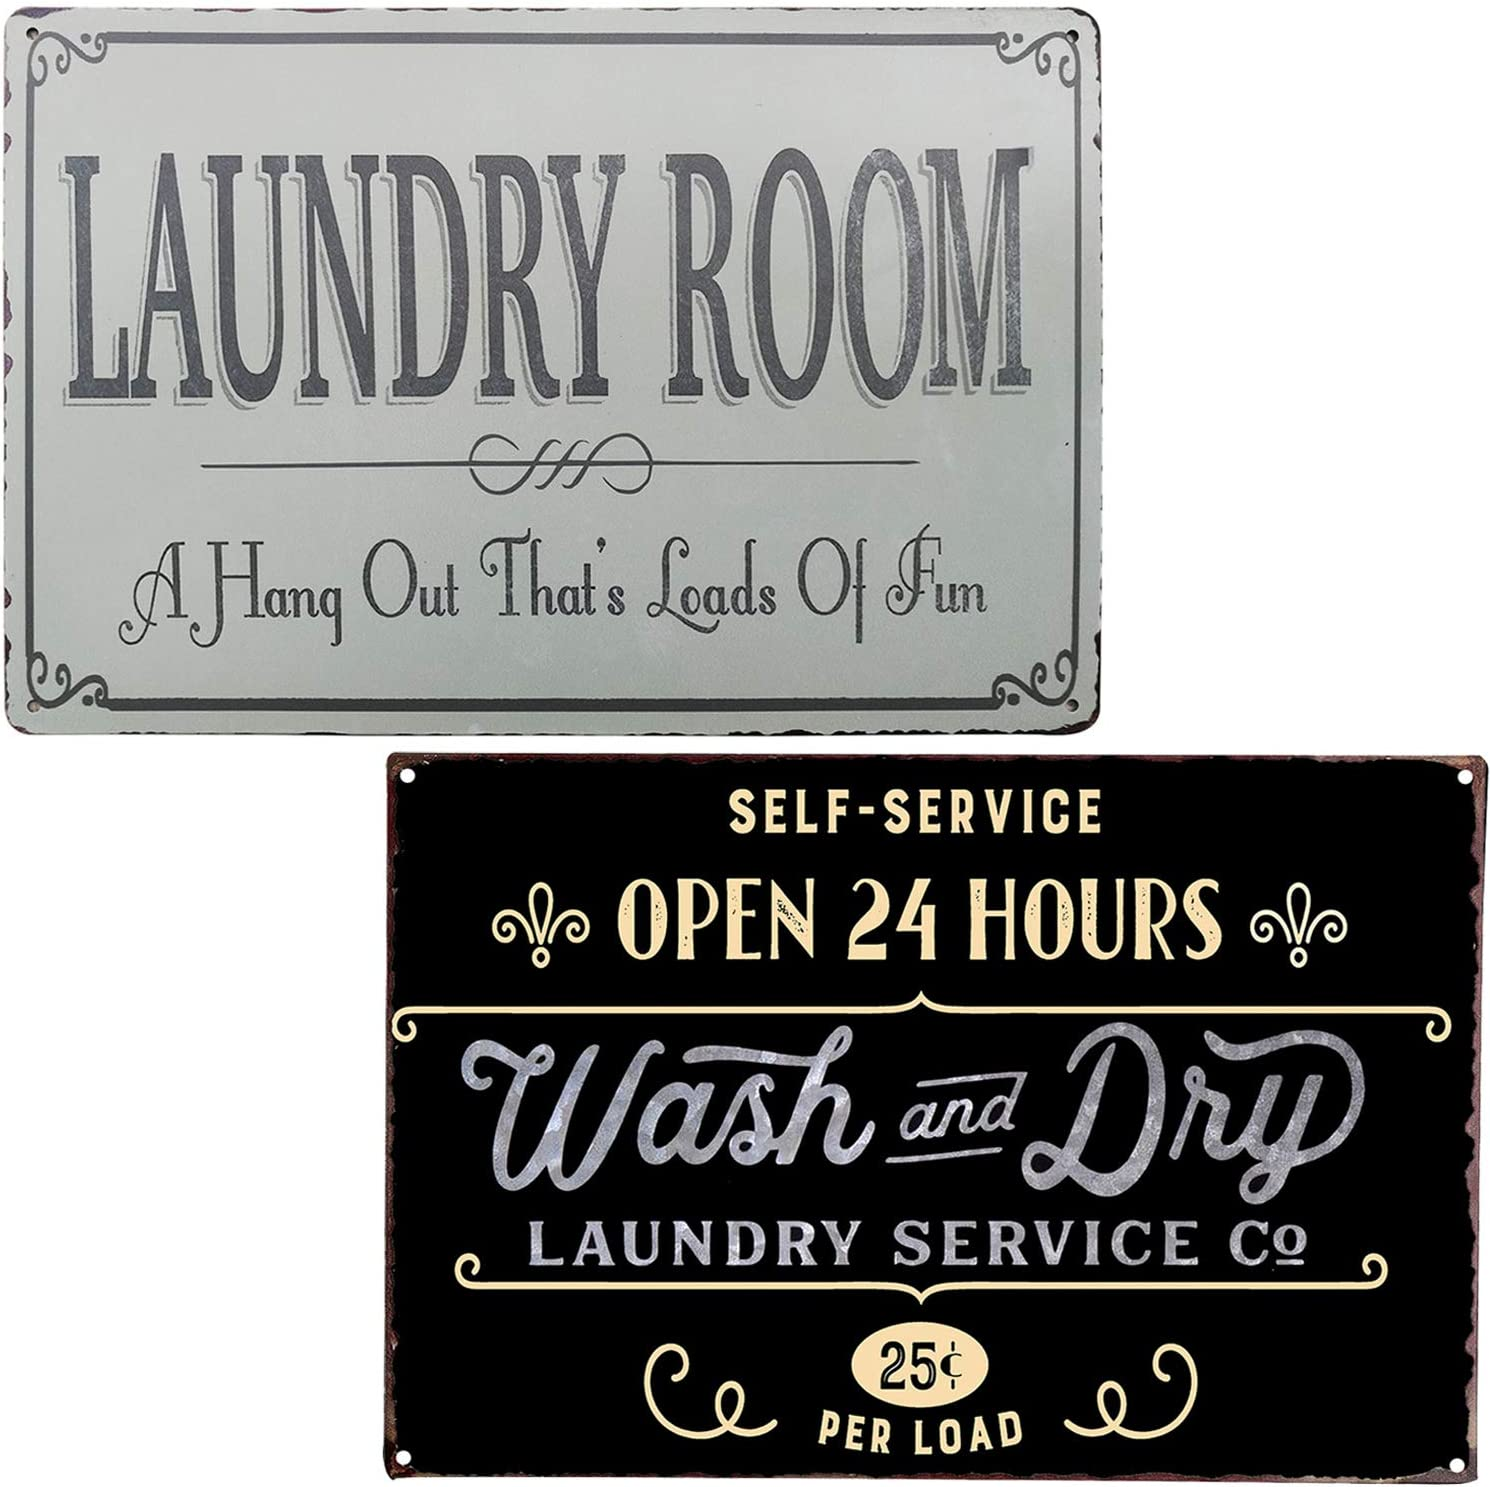 PXIYOU Laundry Room Self-Service Open 24 Hours Wash and Dry Vintage Metal Sign for Washroom Home Decoration 2Pcs-8X12Inch